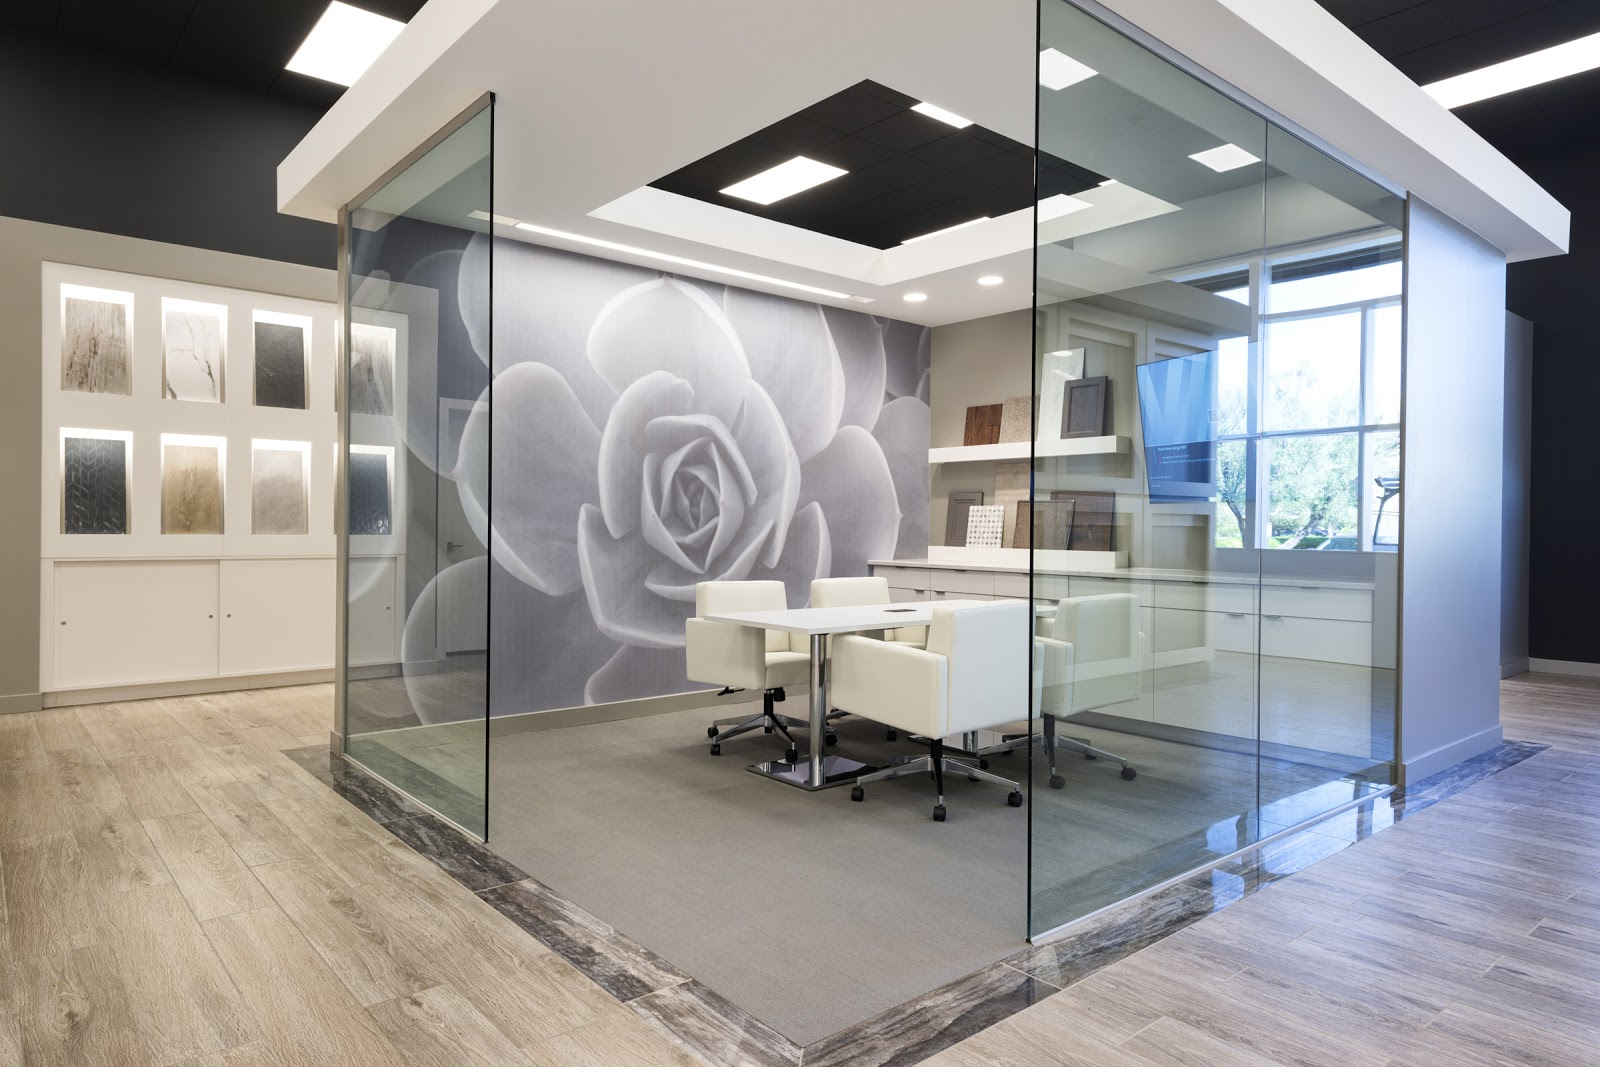 Builders: 3 Big Reasons to Use an Outsourced Professional Design Center